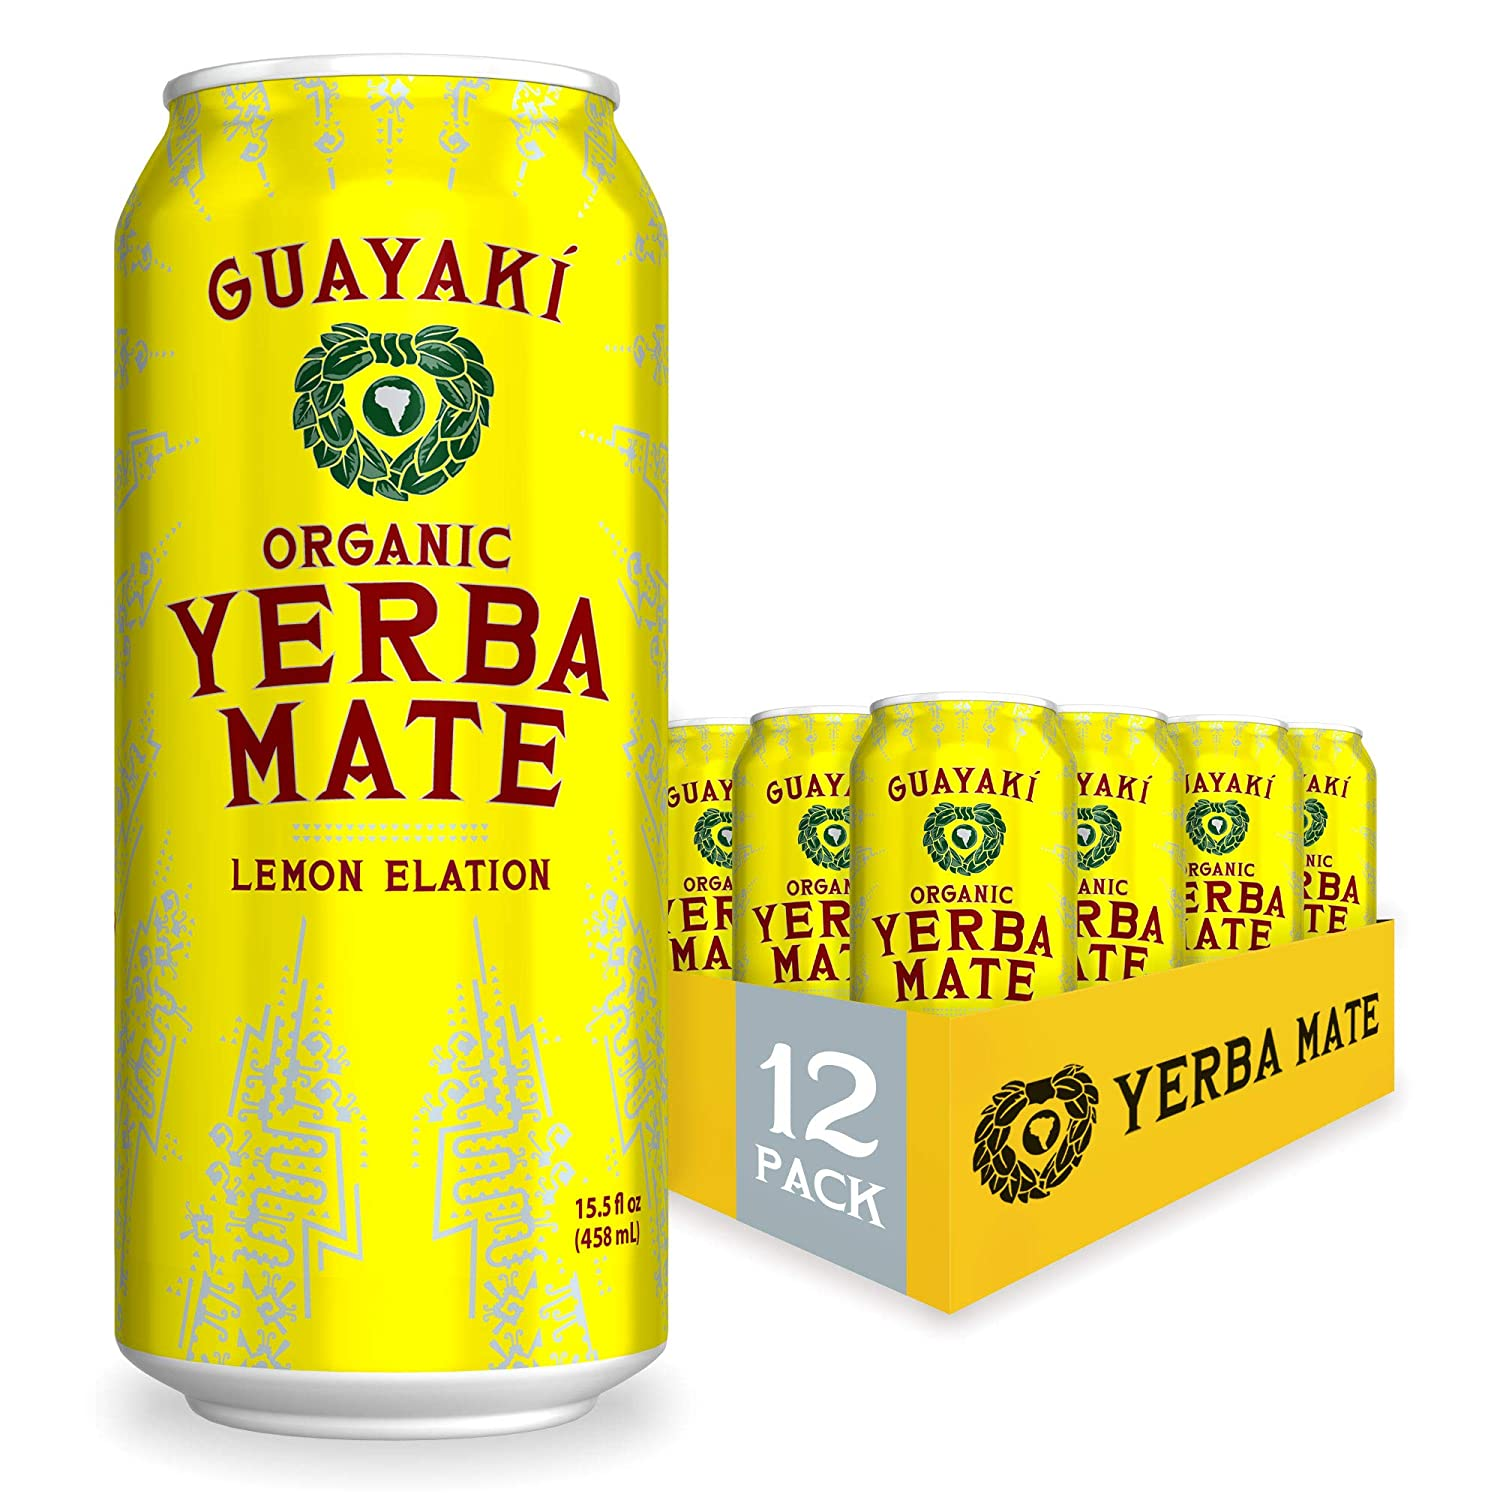 Guayaki Yerba Mate | Organic Alternative to Herbal Tea, Coffee and Energy Drink | Lemon Elation | 150 mg of Caffeine | 15.5 Oz | Pack of 12